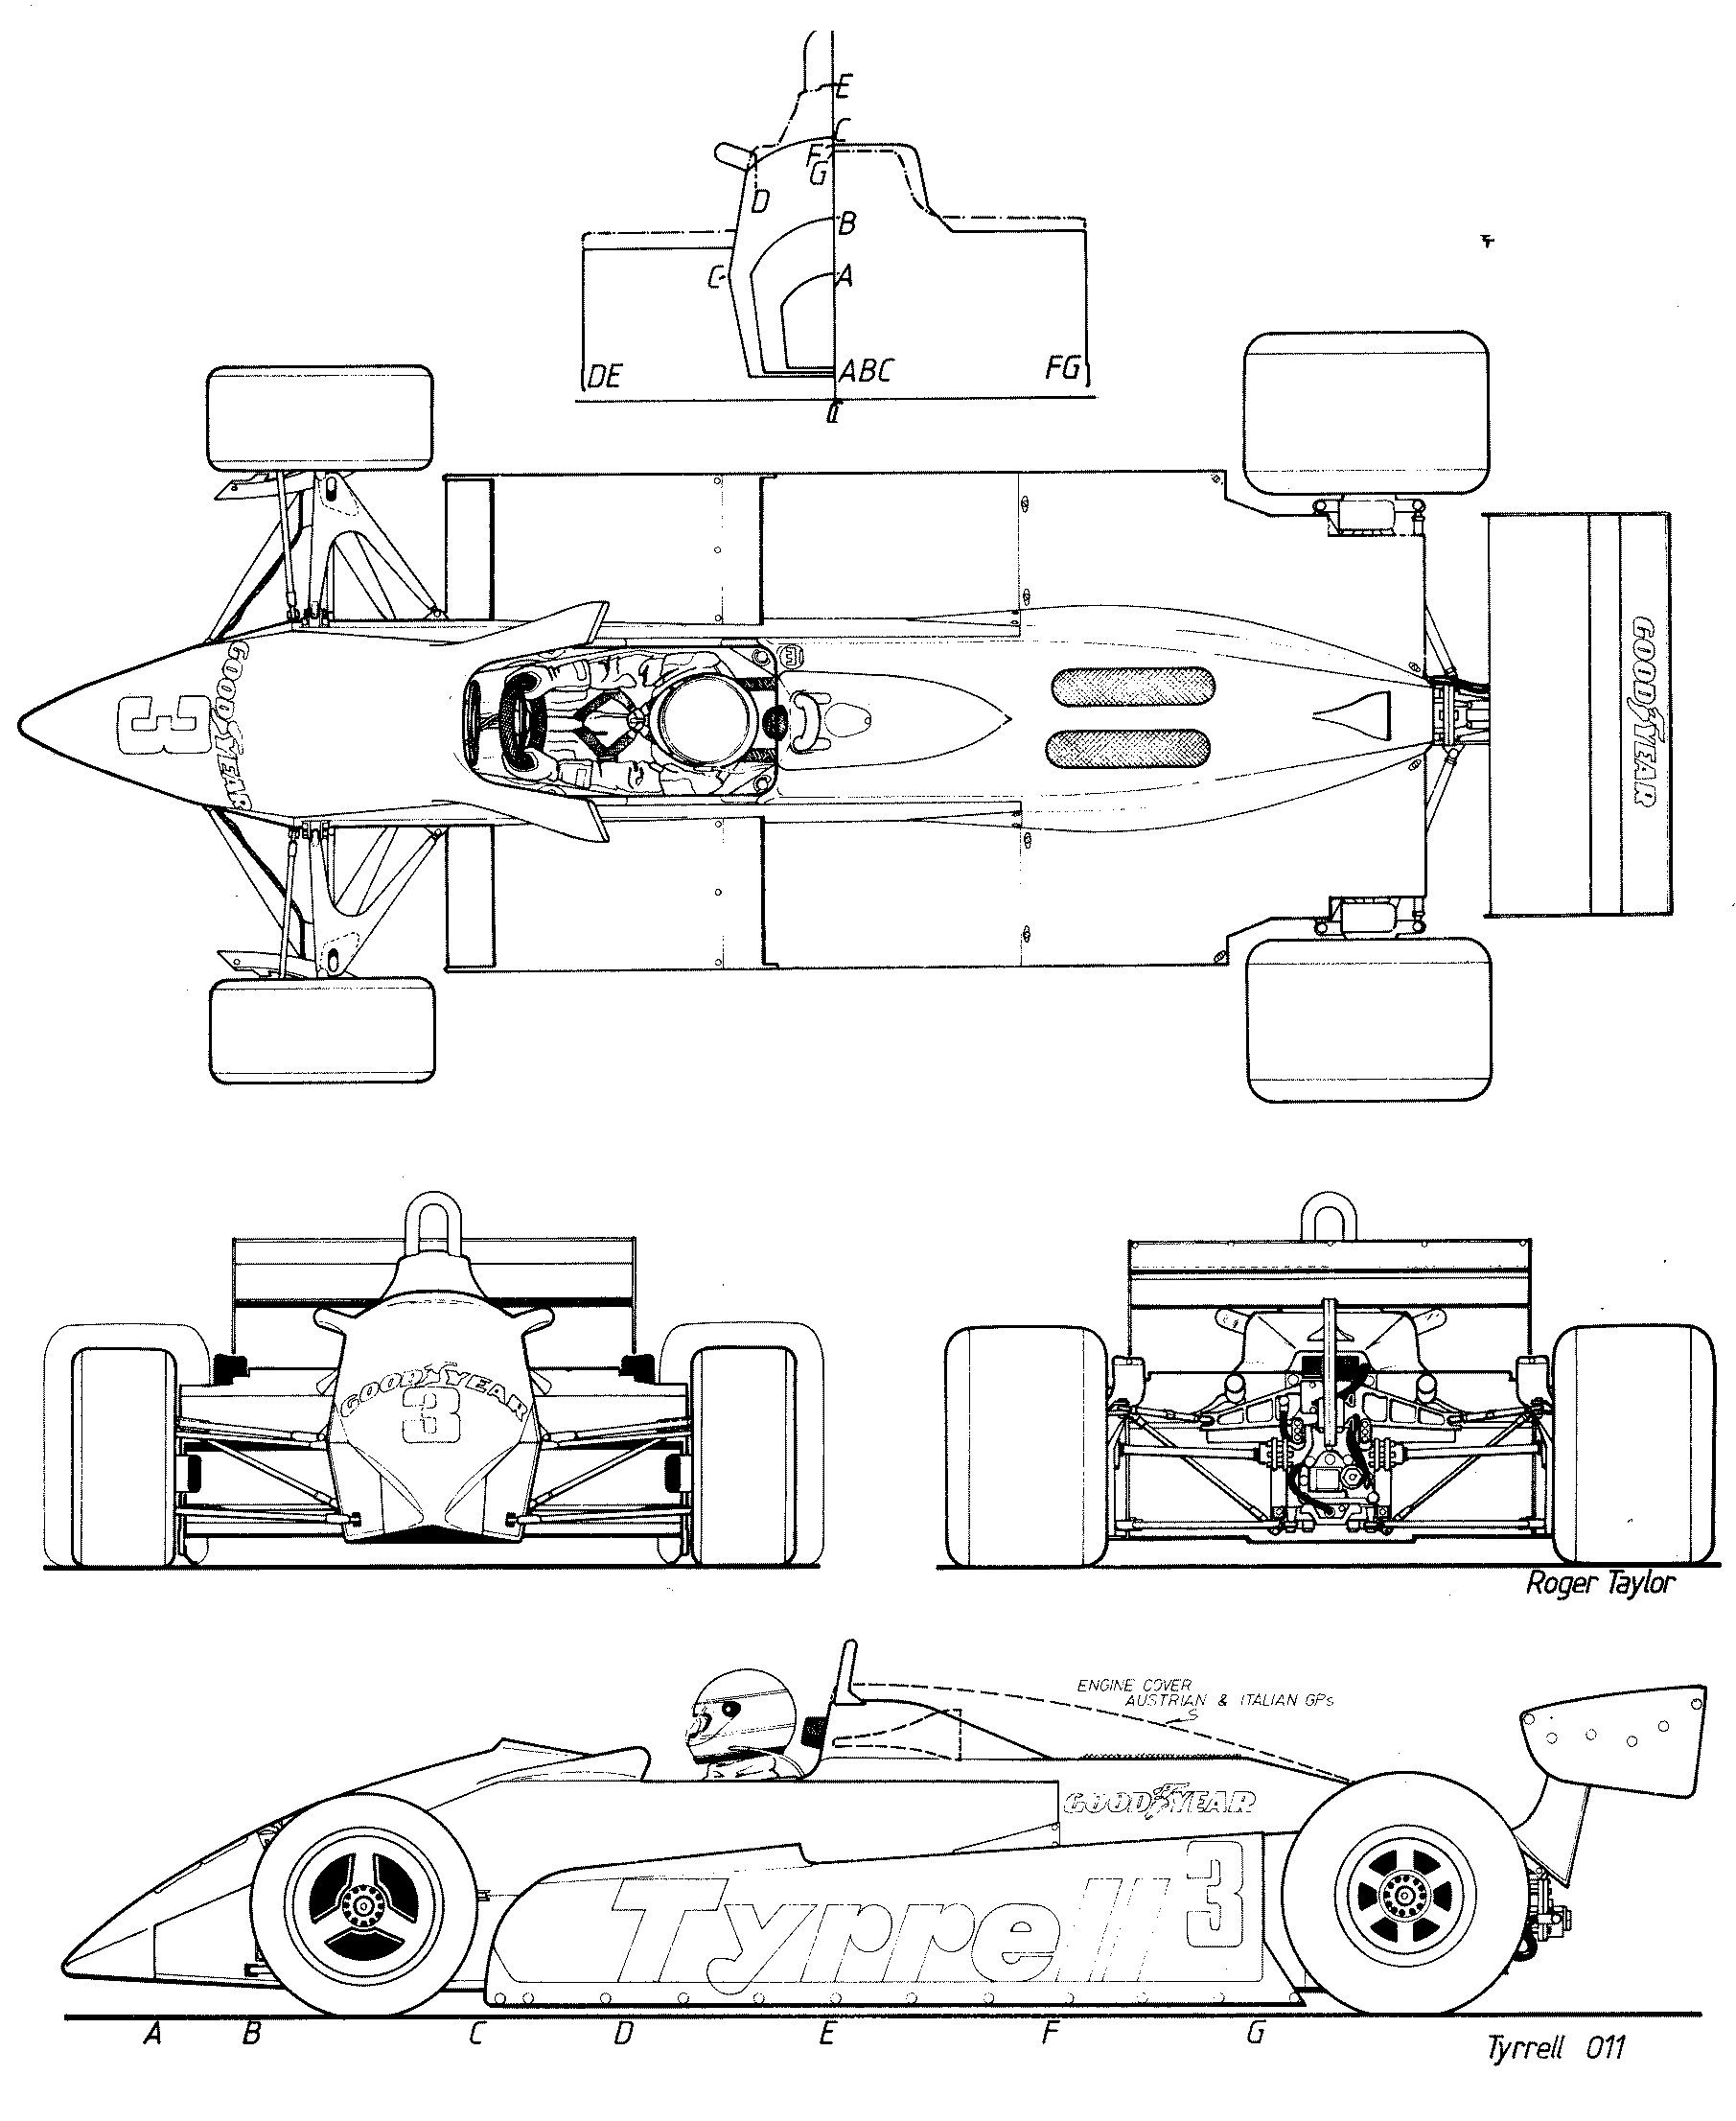 Lola t370 blueprint cars technical drawings pinterest bmw s f1 and vehicle